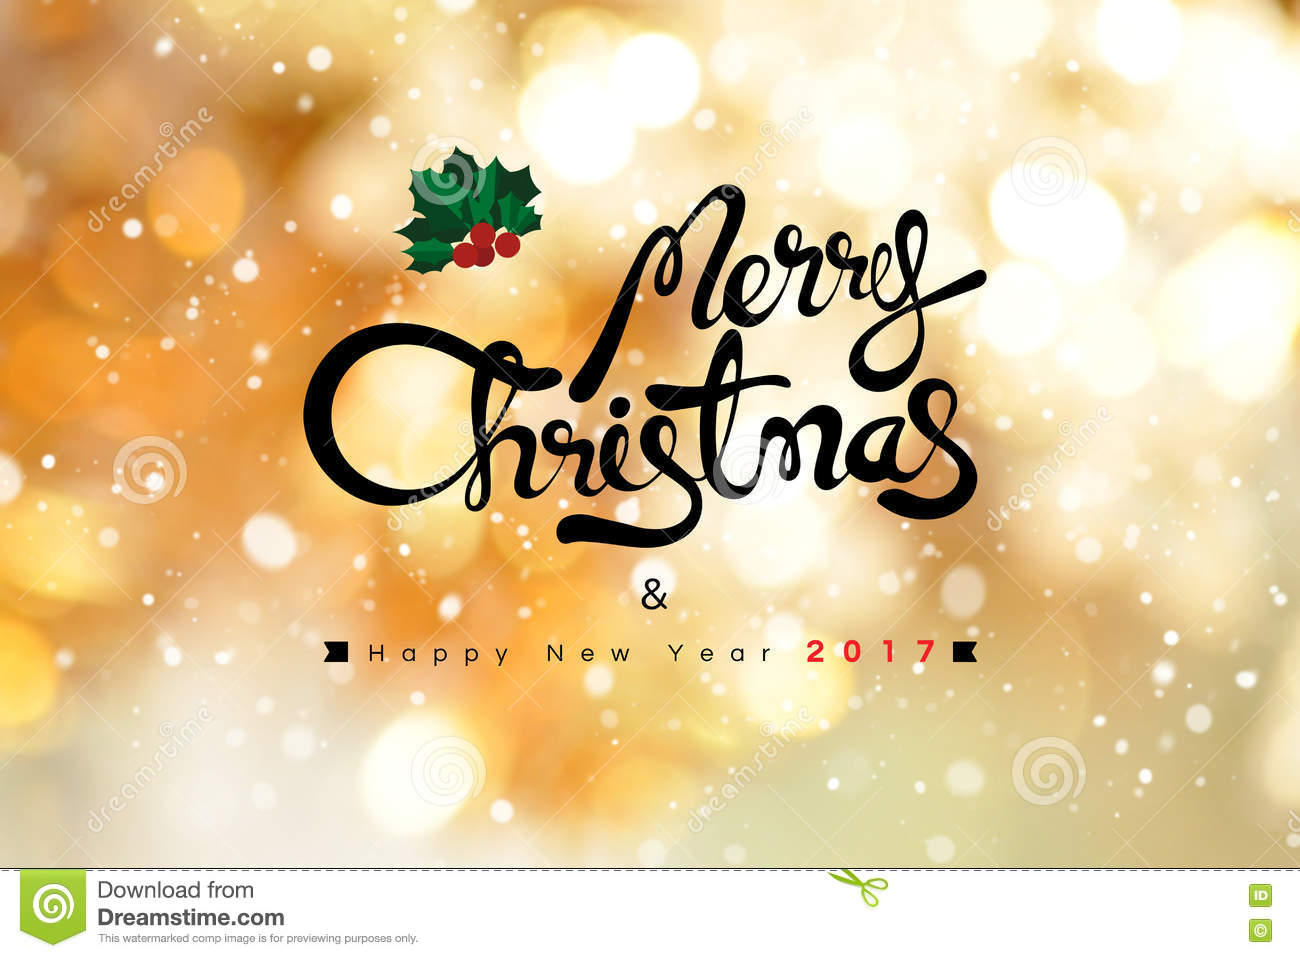 Merry Christmas and Happy New Year 2017 text on shiny gold bokeh background